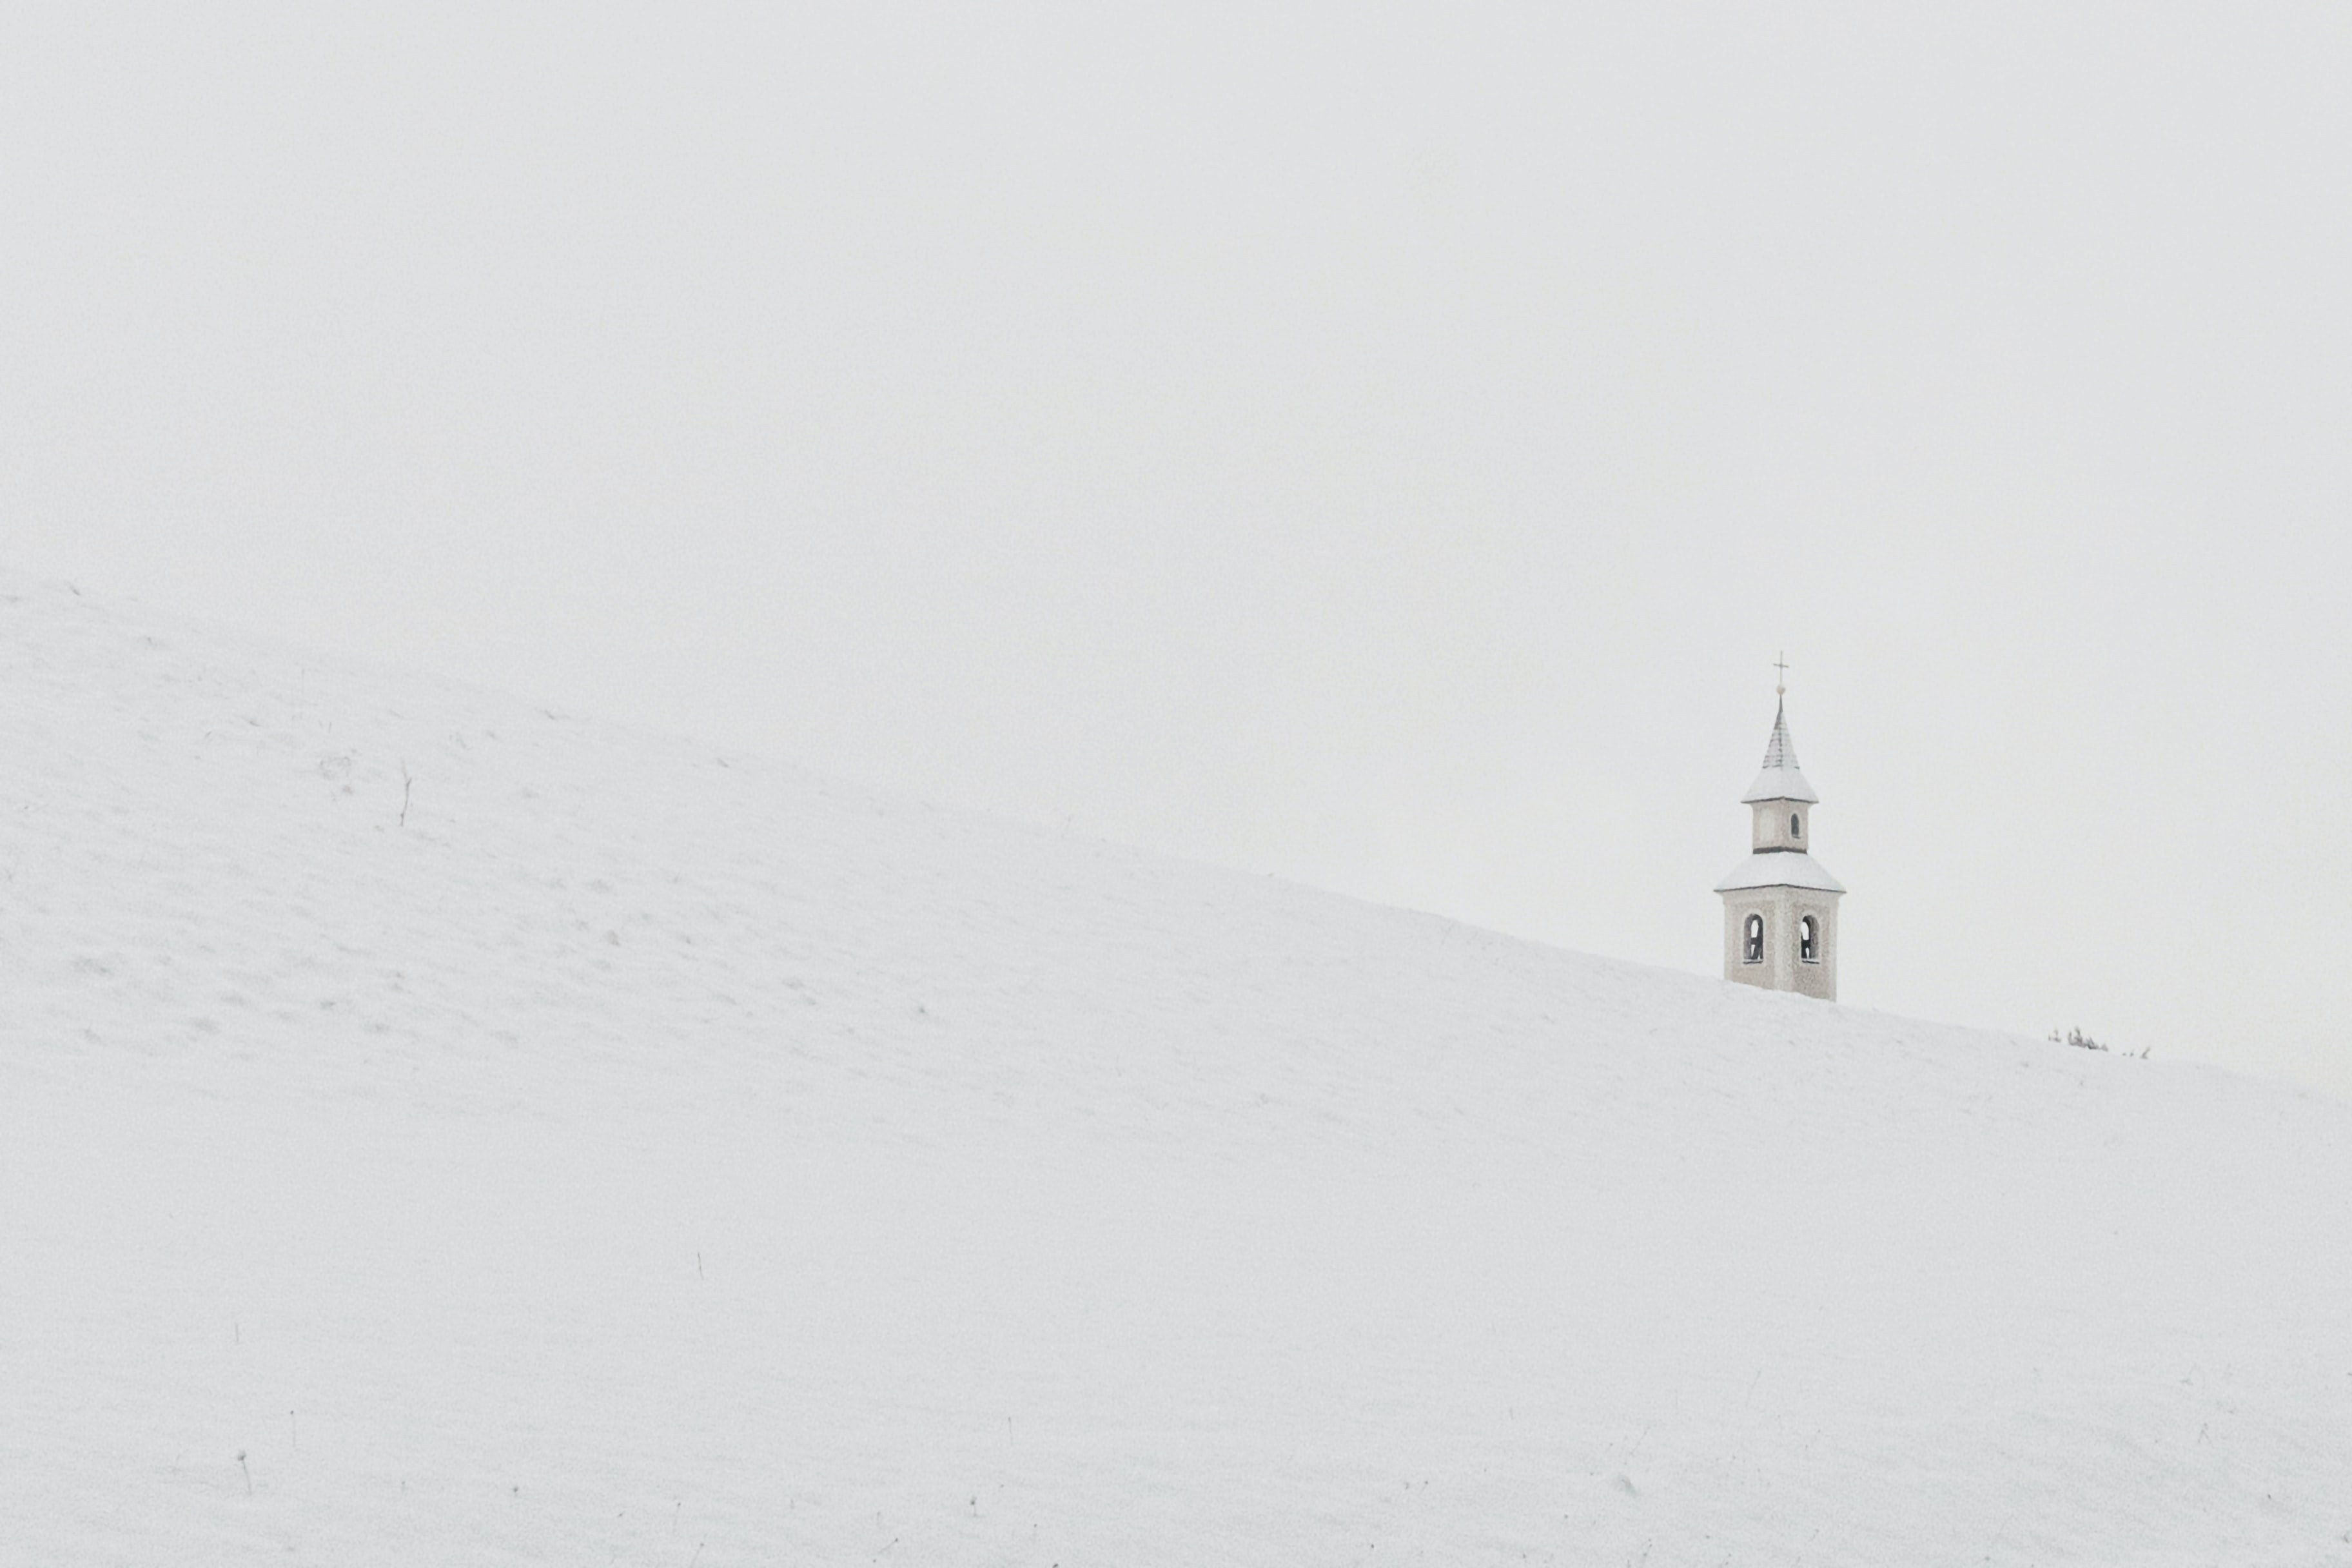 gray concrete tower on pile of snow